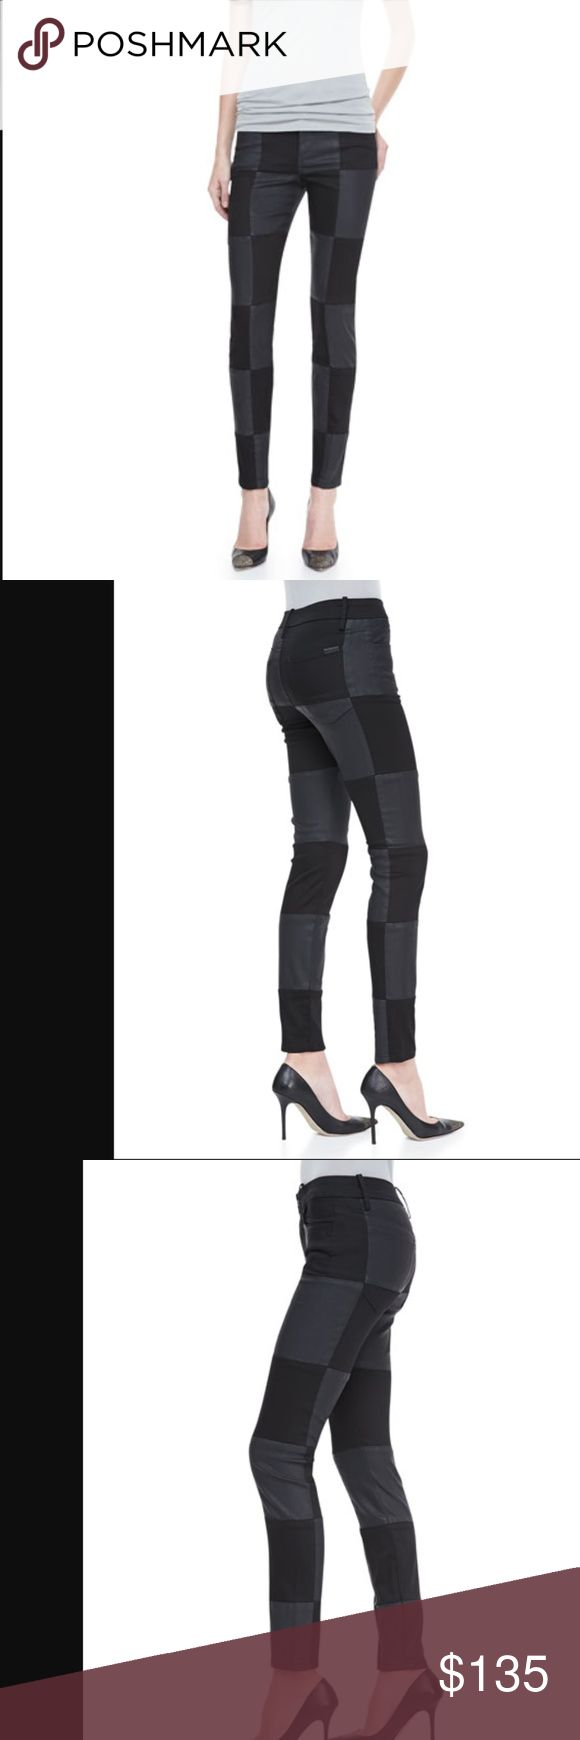 Joe's Jeans | Black Checkered Skinny Ankle Jeans NWT Joe's ' Super Chic ' Jeans checkered stretch denim in black. Fitted through skinny legs, cropped at ankle. Checkered stretch denim. Mid-rise. Five pocket style. Button.zip fly, belt loops. These are gorgeous! These are NWT  - there is some writing on the inside of the jeans on the pocket flap (see pictures!)   65% Lyocell, 33% Cotton, 2% Elastane. Contrast is 100% Lambskin Leather. Dry cleaning is recommended, though they are machine…